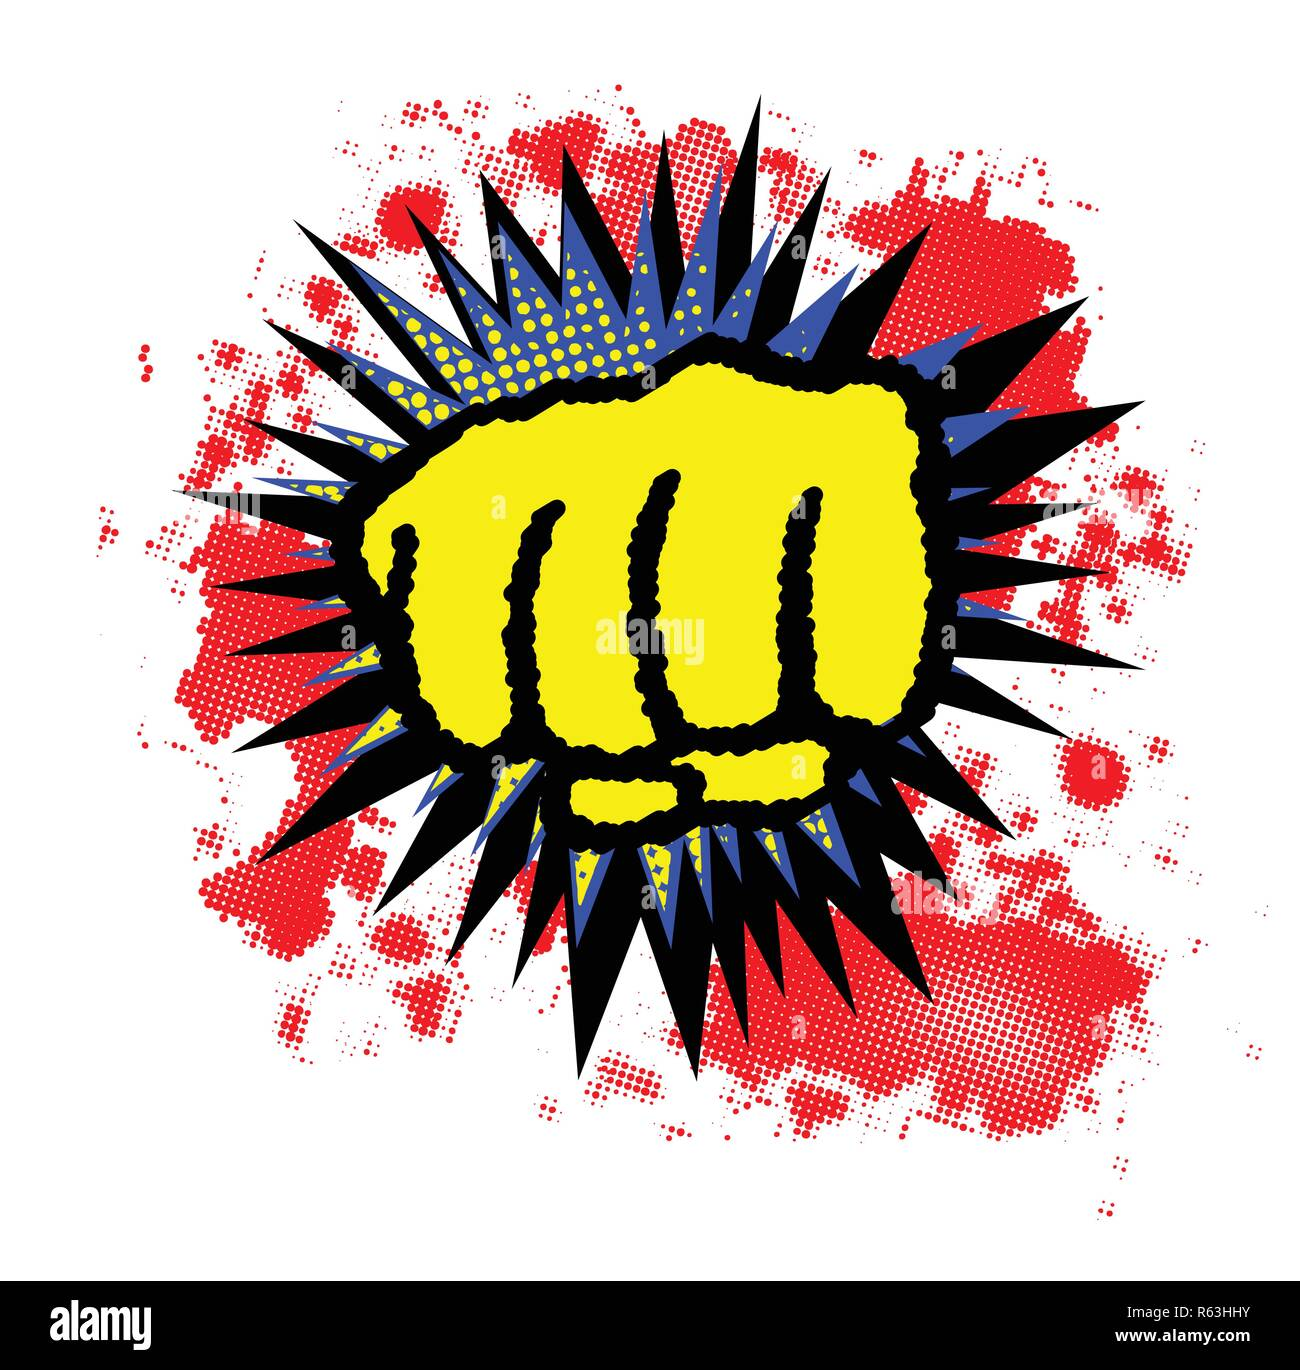 https://c8.alamy.com/comp/R63HHY/a-comic-cartoon-style-boom-explosion-and-fist-punch-over-a-white-background-R63HHY.jpg